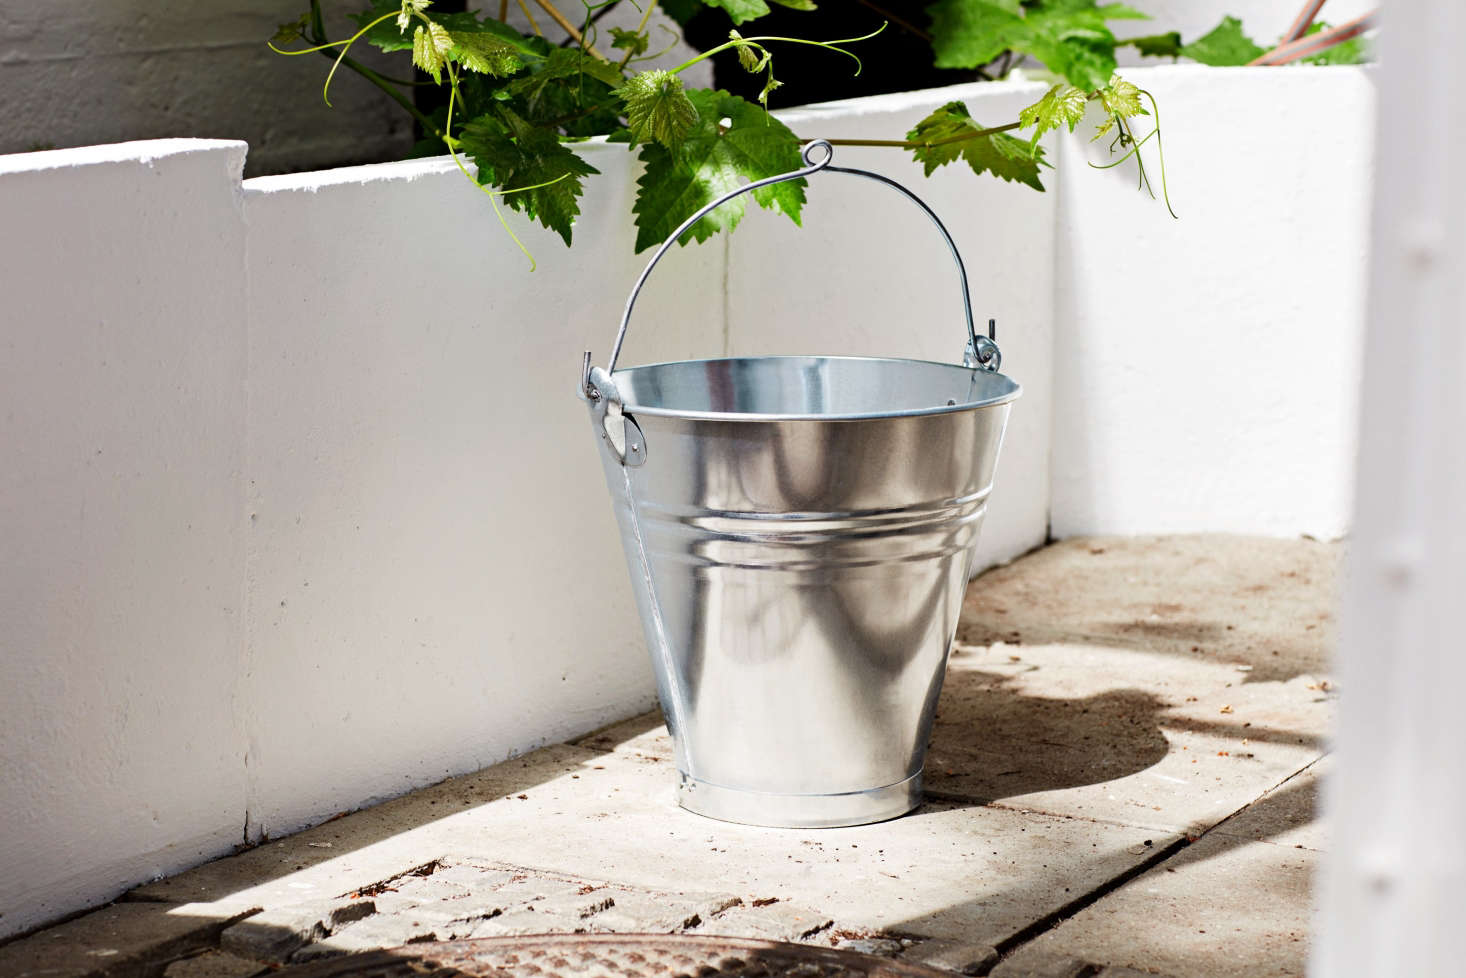 TheTurkish Handmade Bucket from the new Hay Kitchen Market line is available through SFMOMA and Hay.